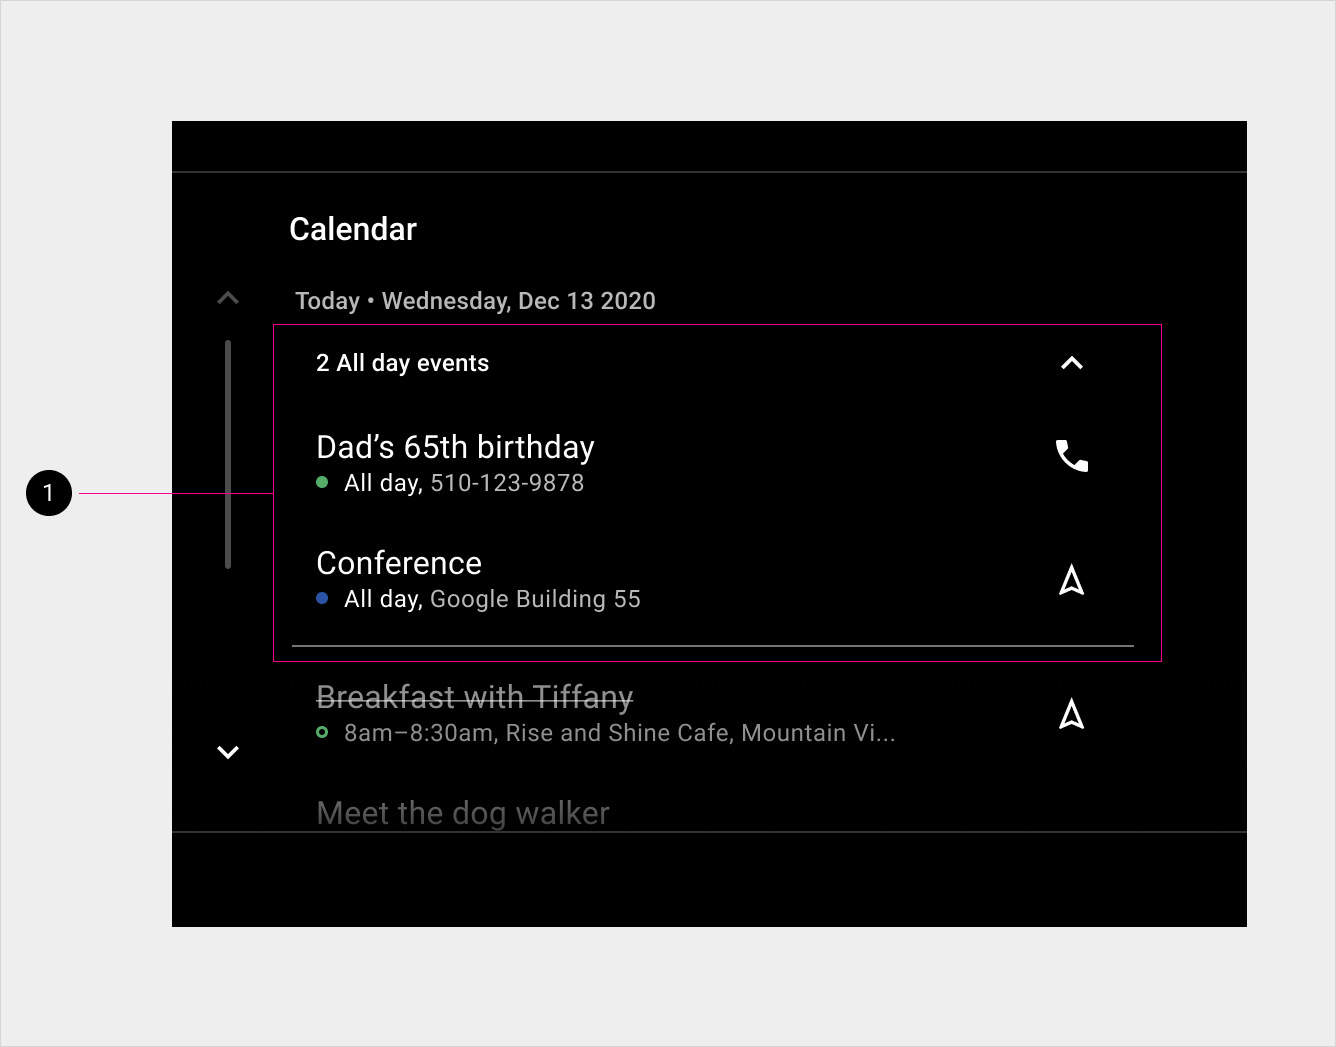 Calendar view of Today's all-day events